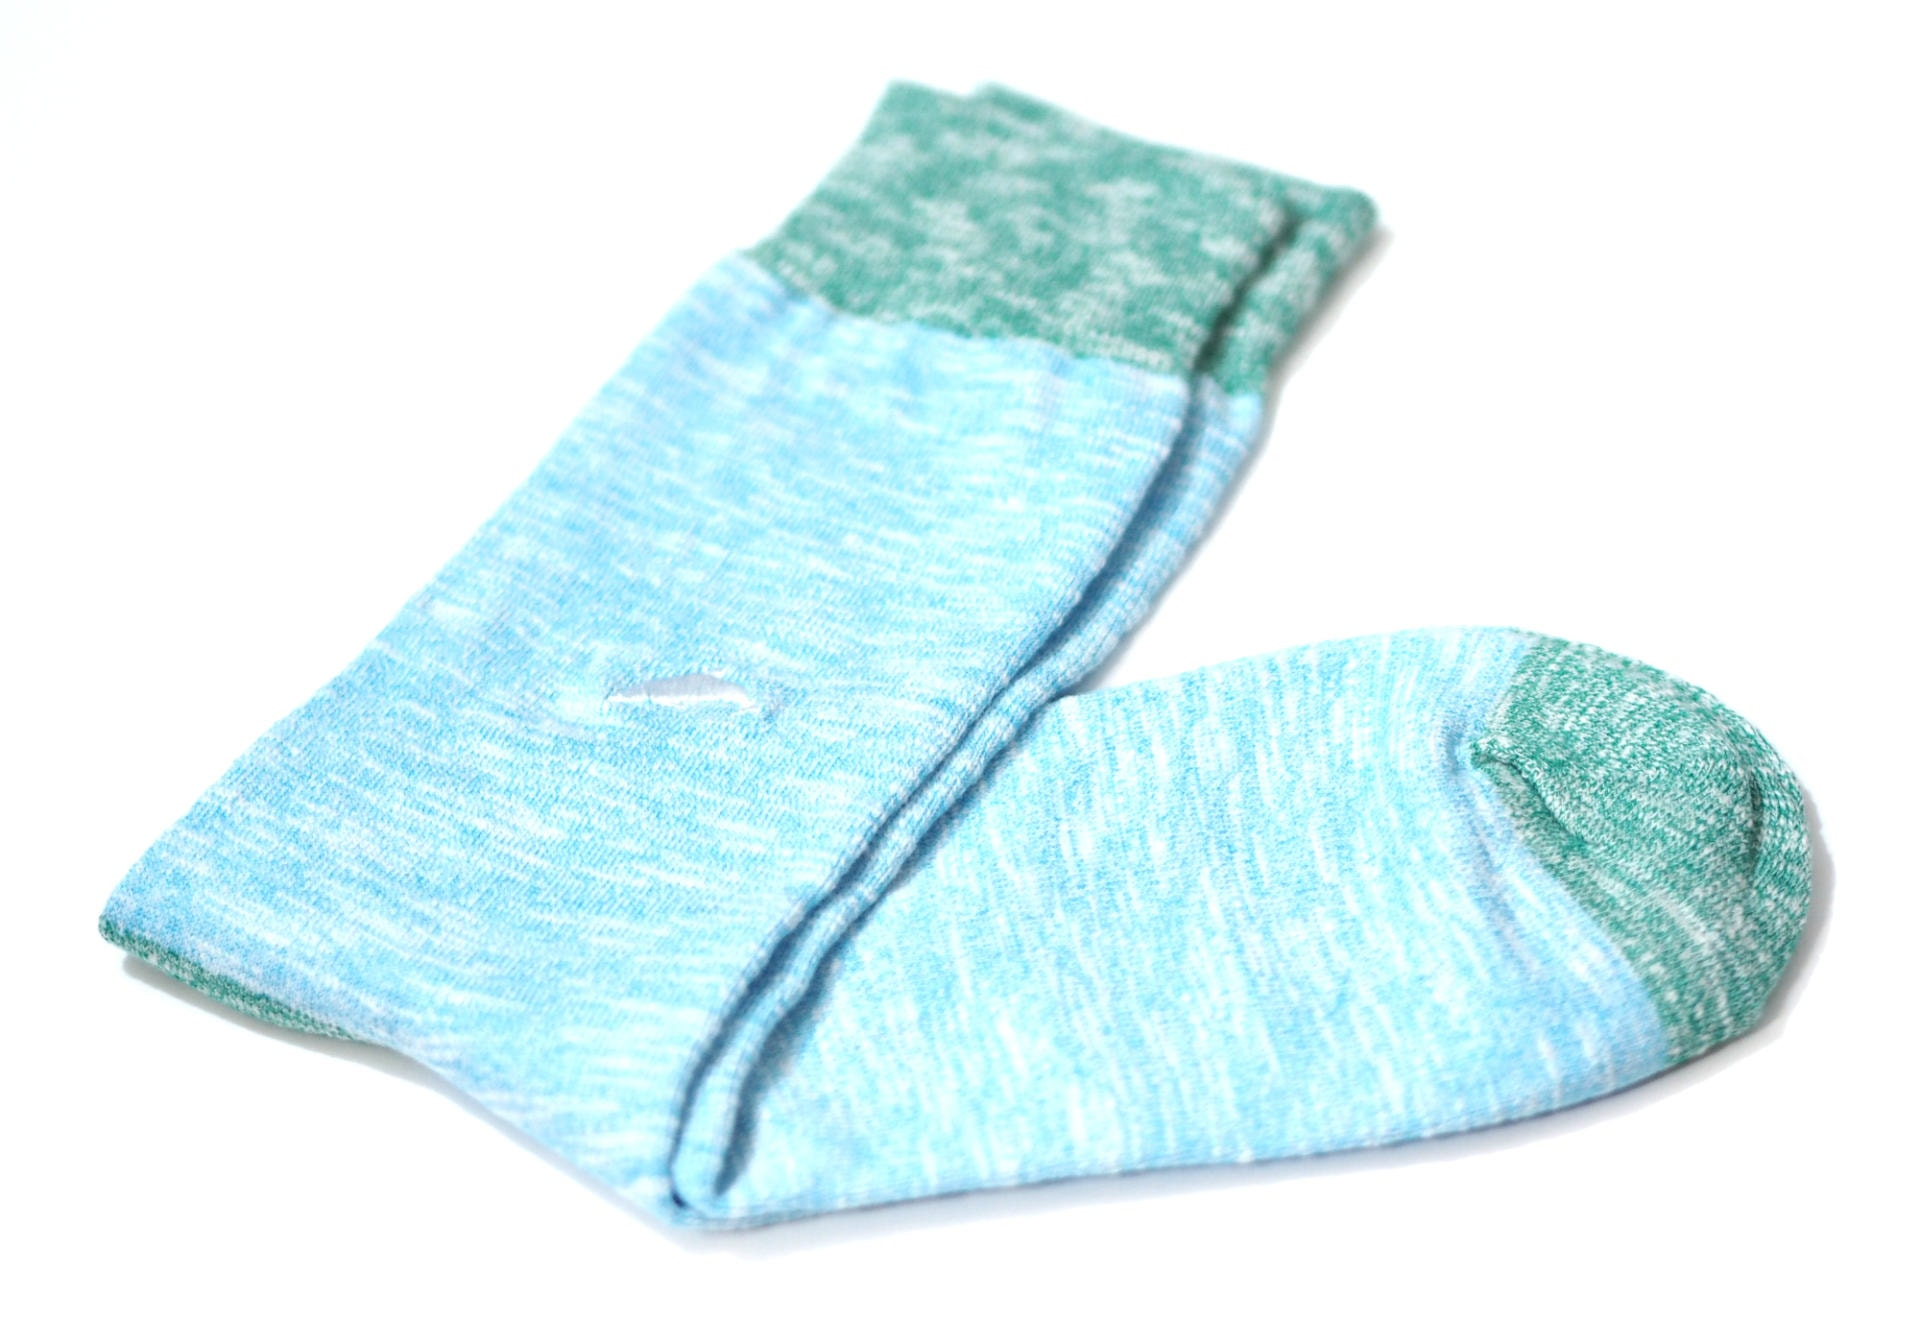 Critically Endangered Socks - The Maui Dolphin